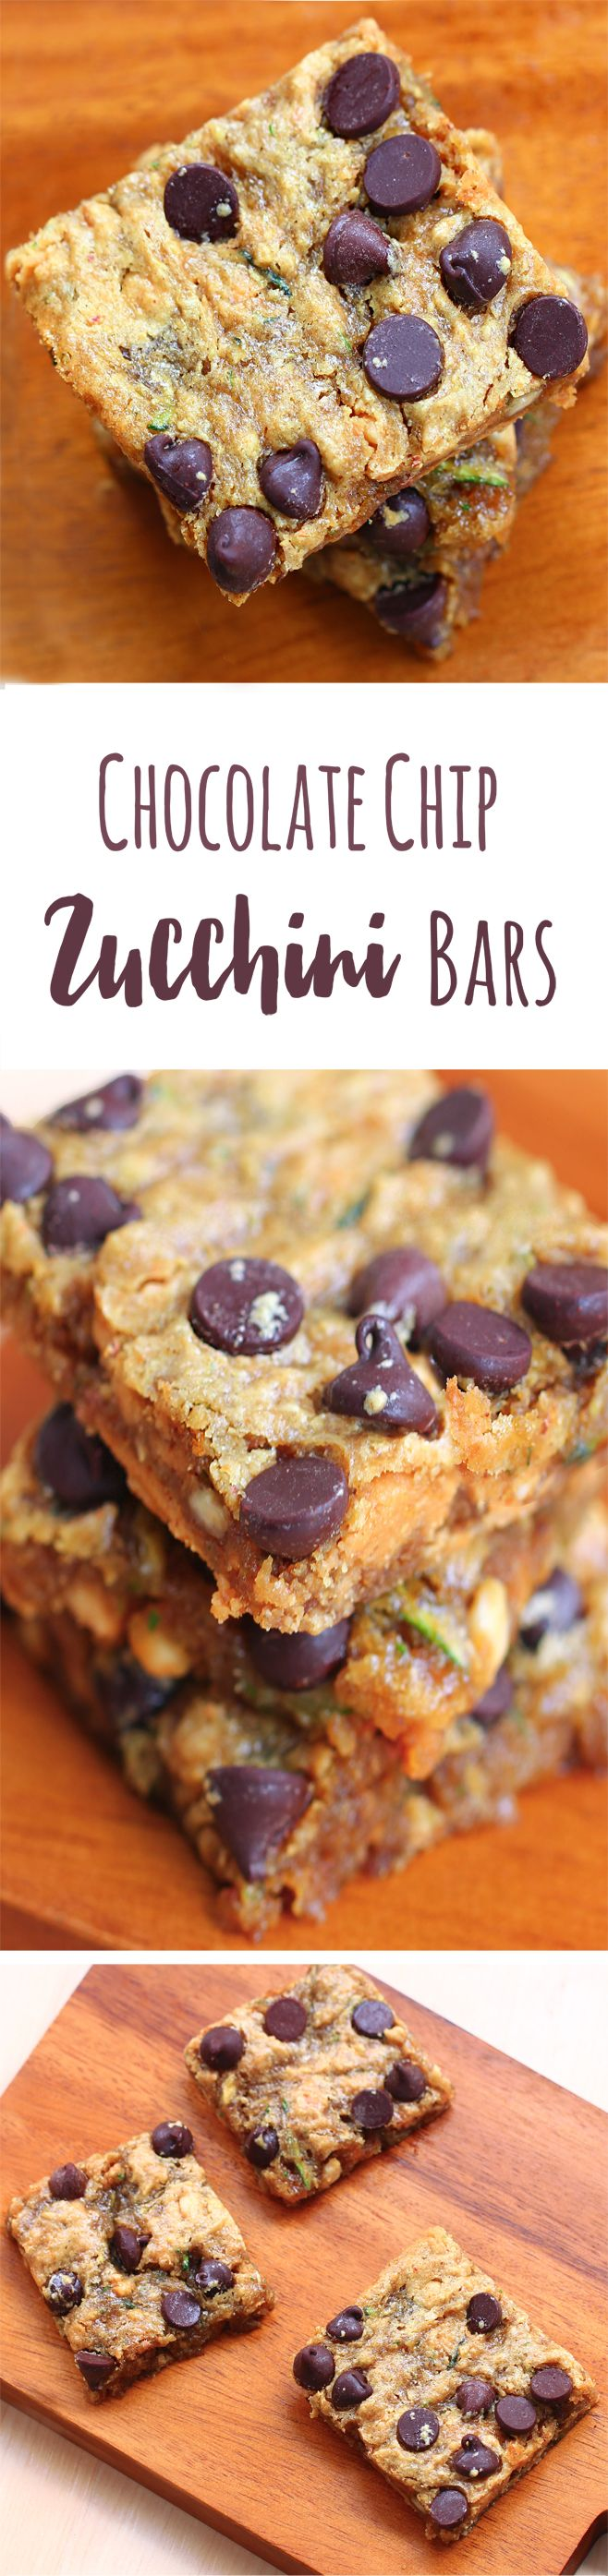 Chocolate Chip Zucchini Bars - Ingredients: 1 cup zucchini, 1/4 cup chocolate chips, 2 tsp vanilla, 1/2 tsp baking soda, 1 tbsp... Full recipe: http://chocolatecoveredkatie.com/2014/11/03/chocolate-chip-zucchini-bars/ @choccoveredkt